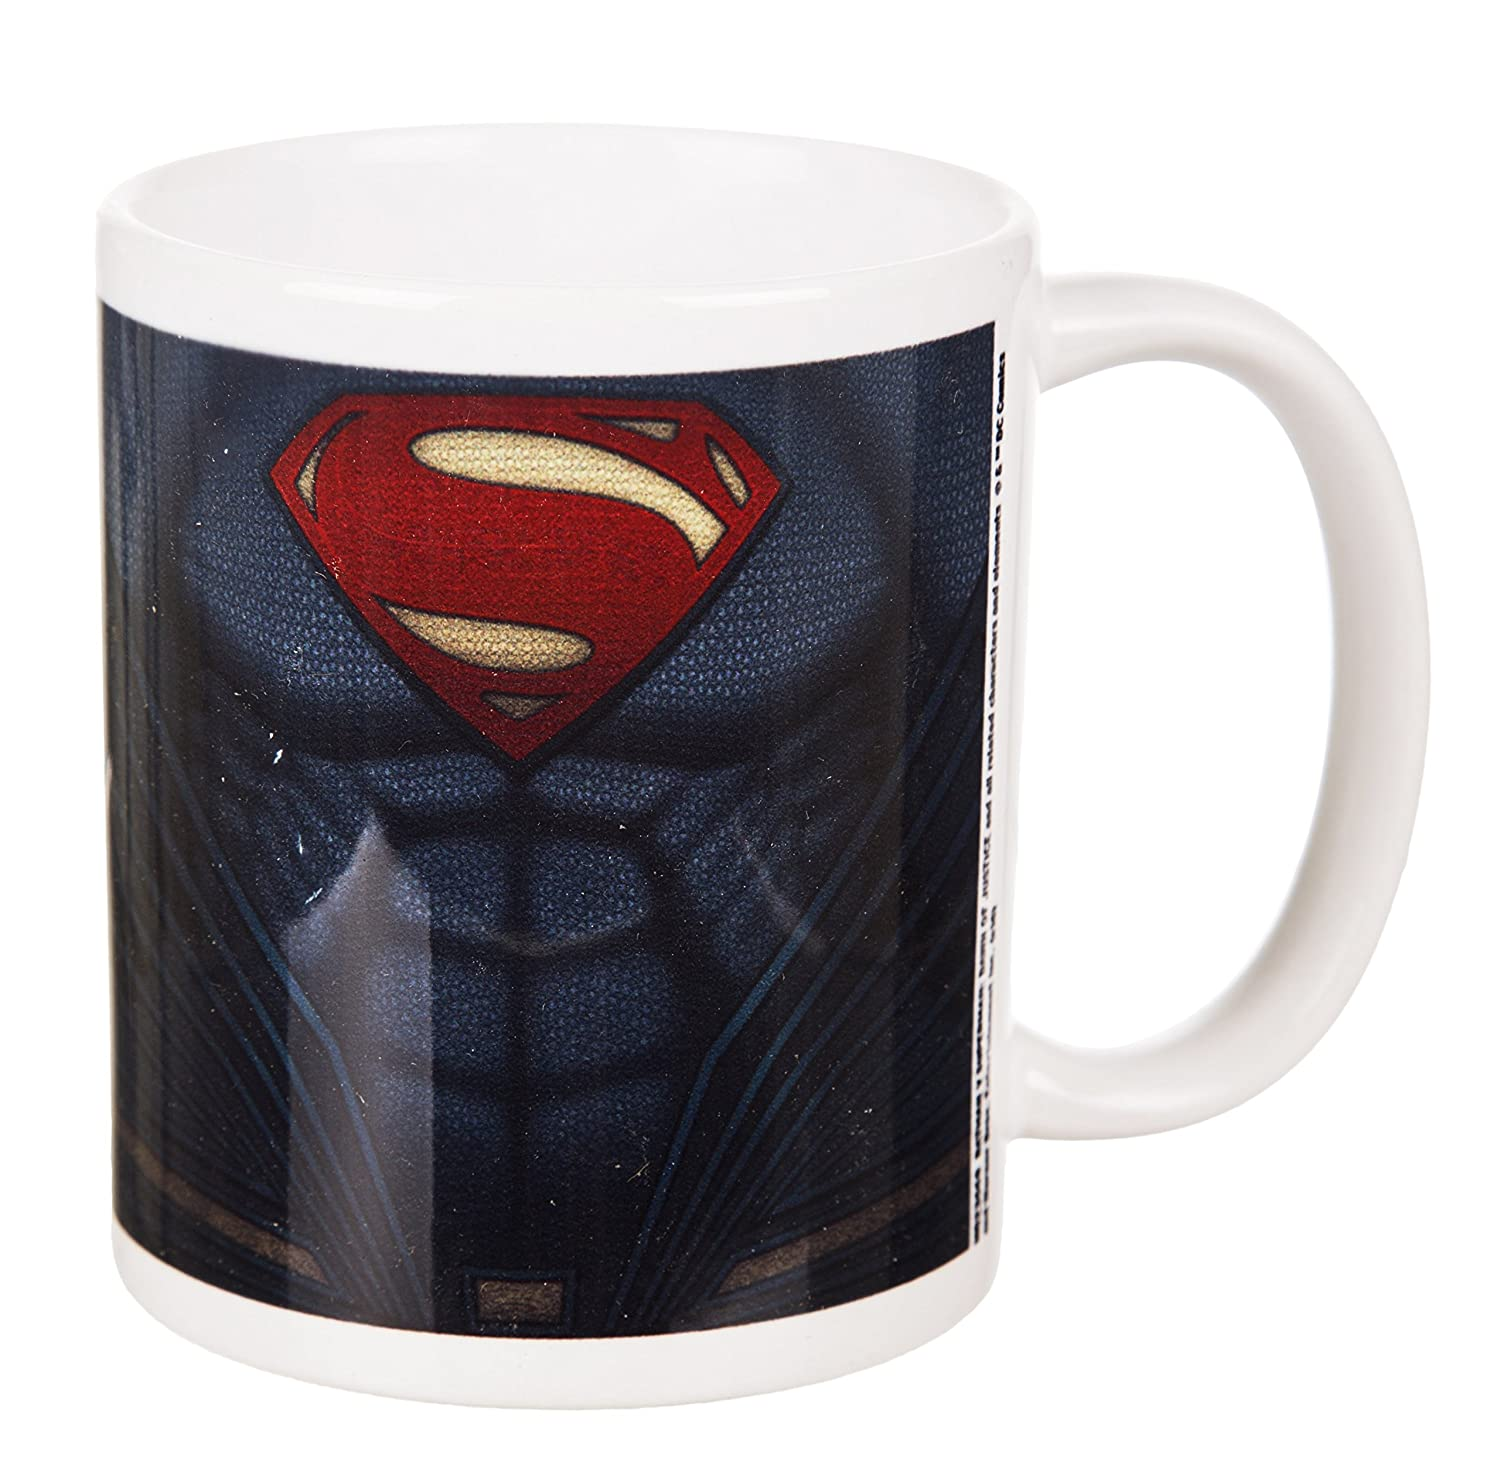 Batman V Superman Superman traje taza: Amazon.es: Hogar